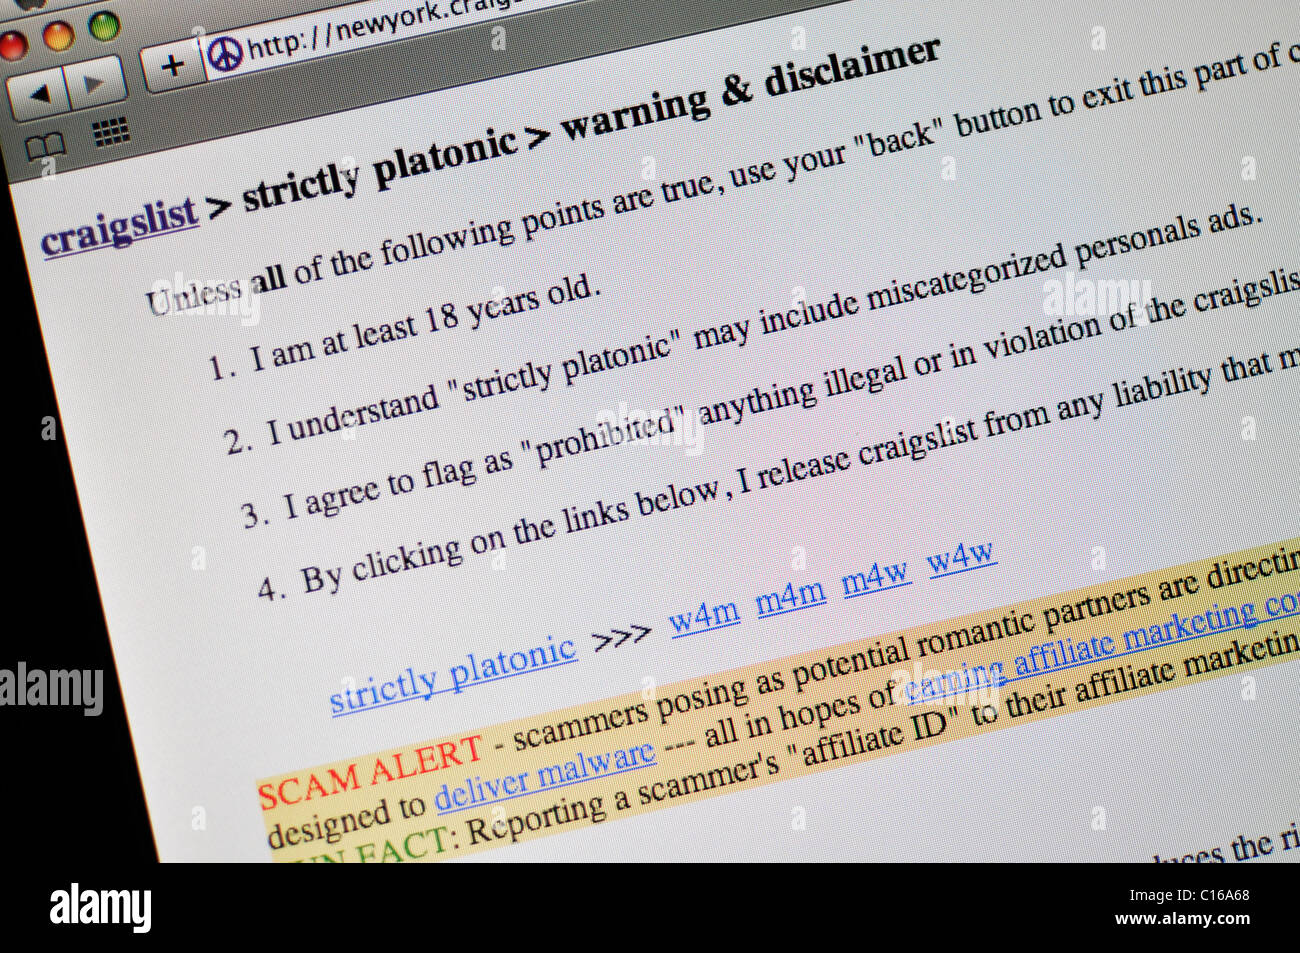 Scam Stock Photos & Scam Stock Images - Alamy